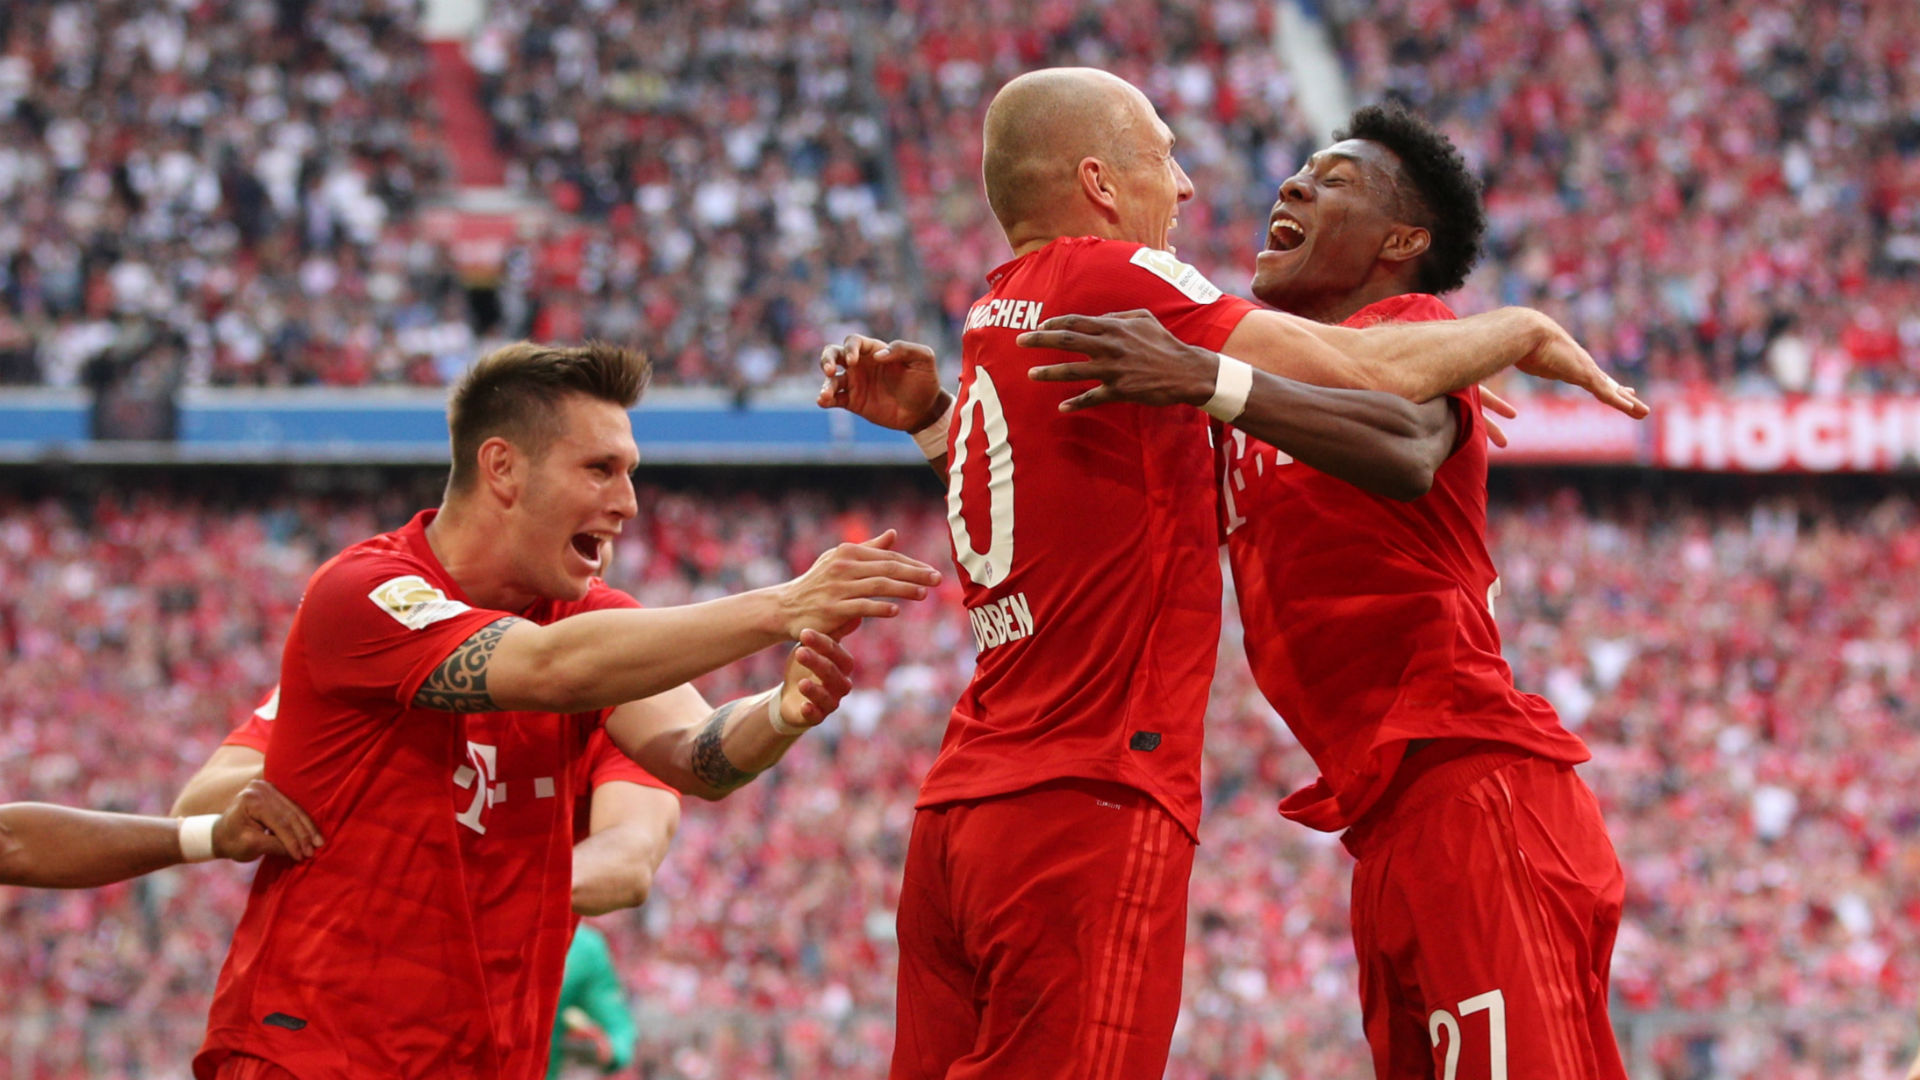 RB Leipzig vs Bayern Munich Betting Tips: Latest odds, team news, preview and predictions